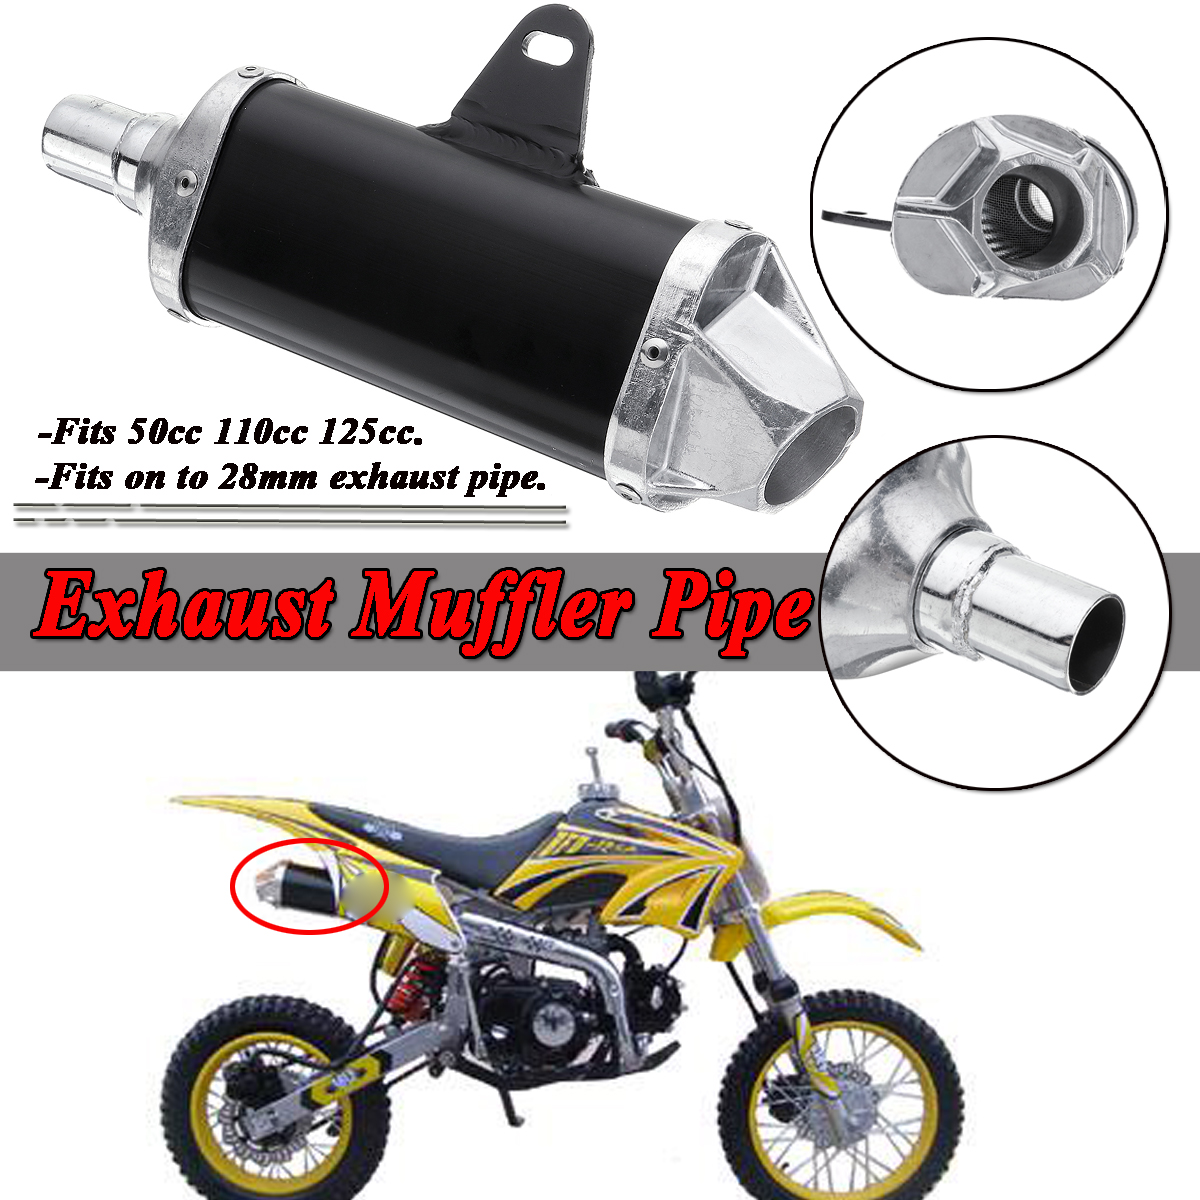 New 28mm Universal Motorcycle Pit Dirt Bike Exhaust Muffler Pipe 50cc 110cc 125cc For Honda For Harley For Yamaha For Suzuki